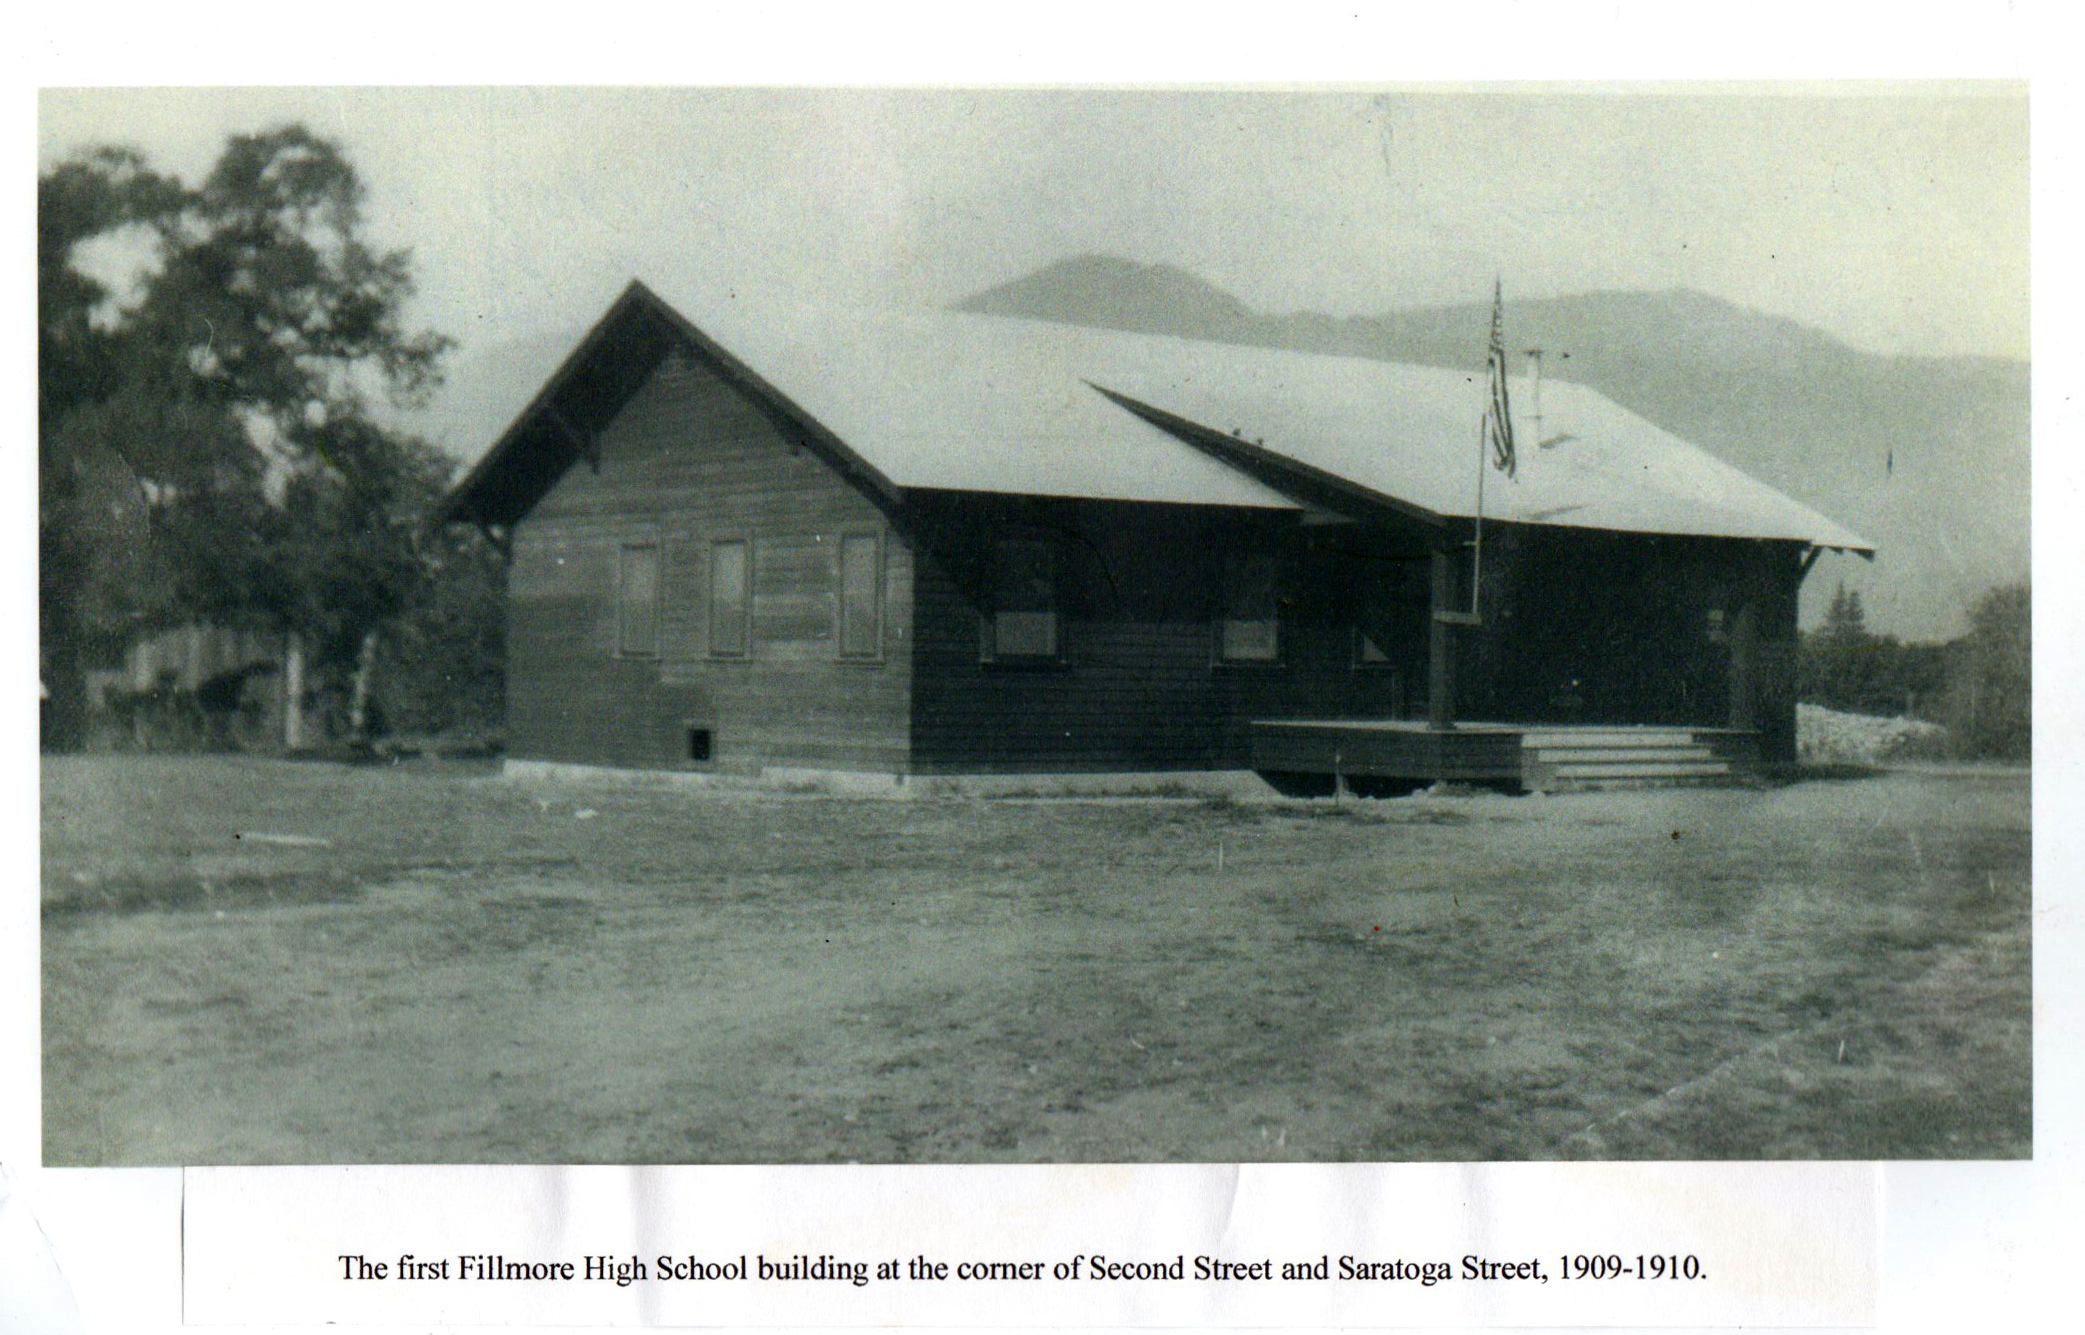 The first Fillmore High School building at the corner of Second Street and Saratoga Street, 1909-1910.